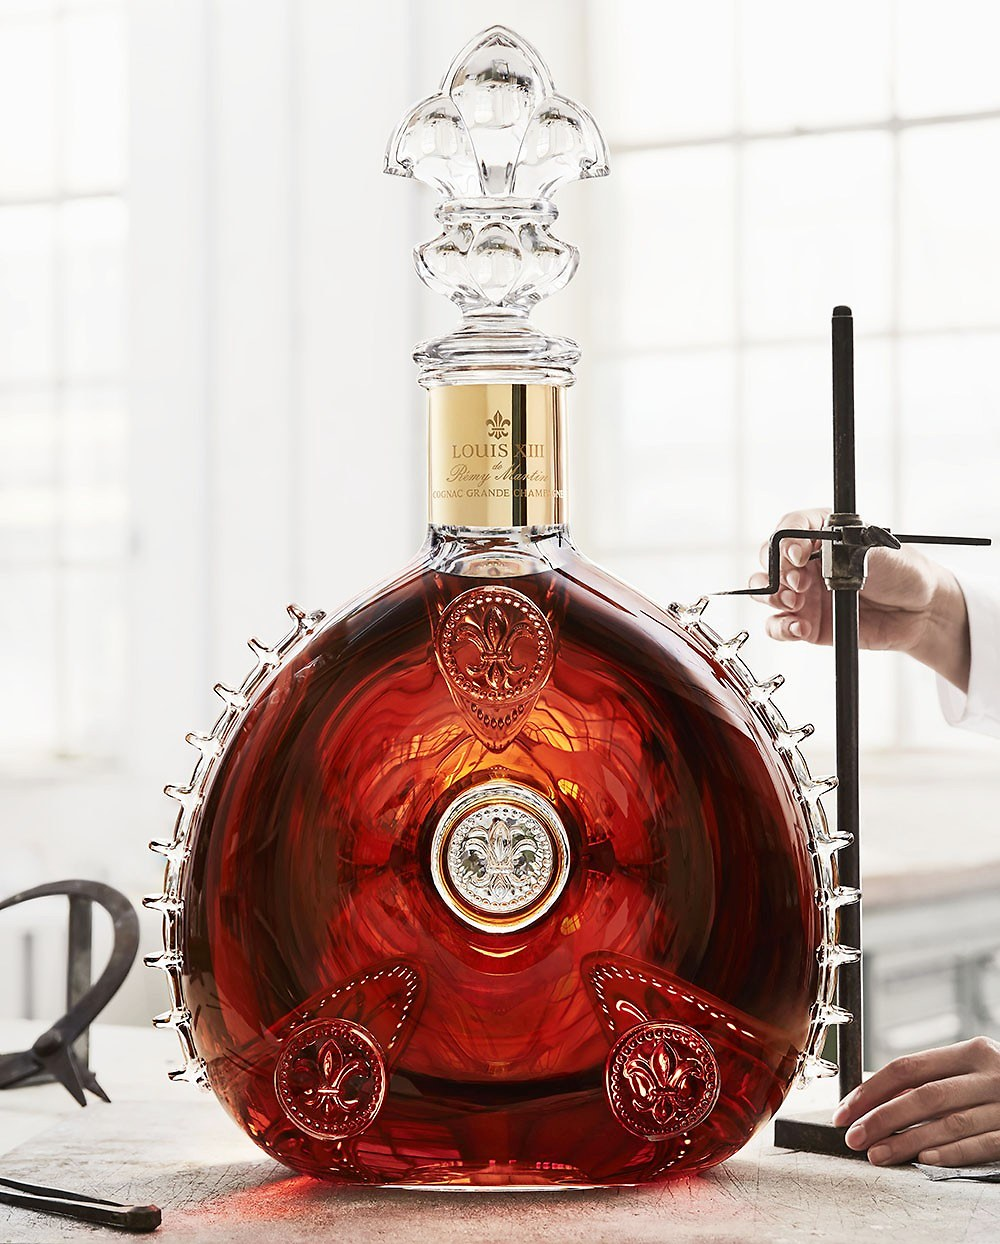 Louis Xiii Le Salmanazar Presents The One And Only 9 Liter Decanter Eat Love Savor